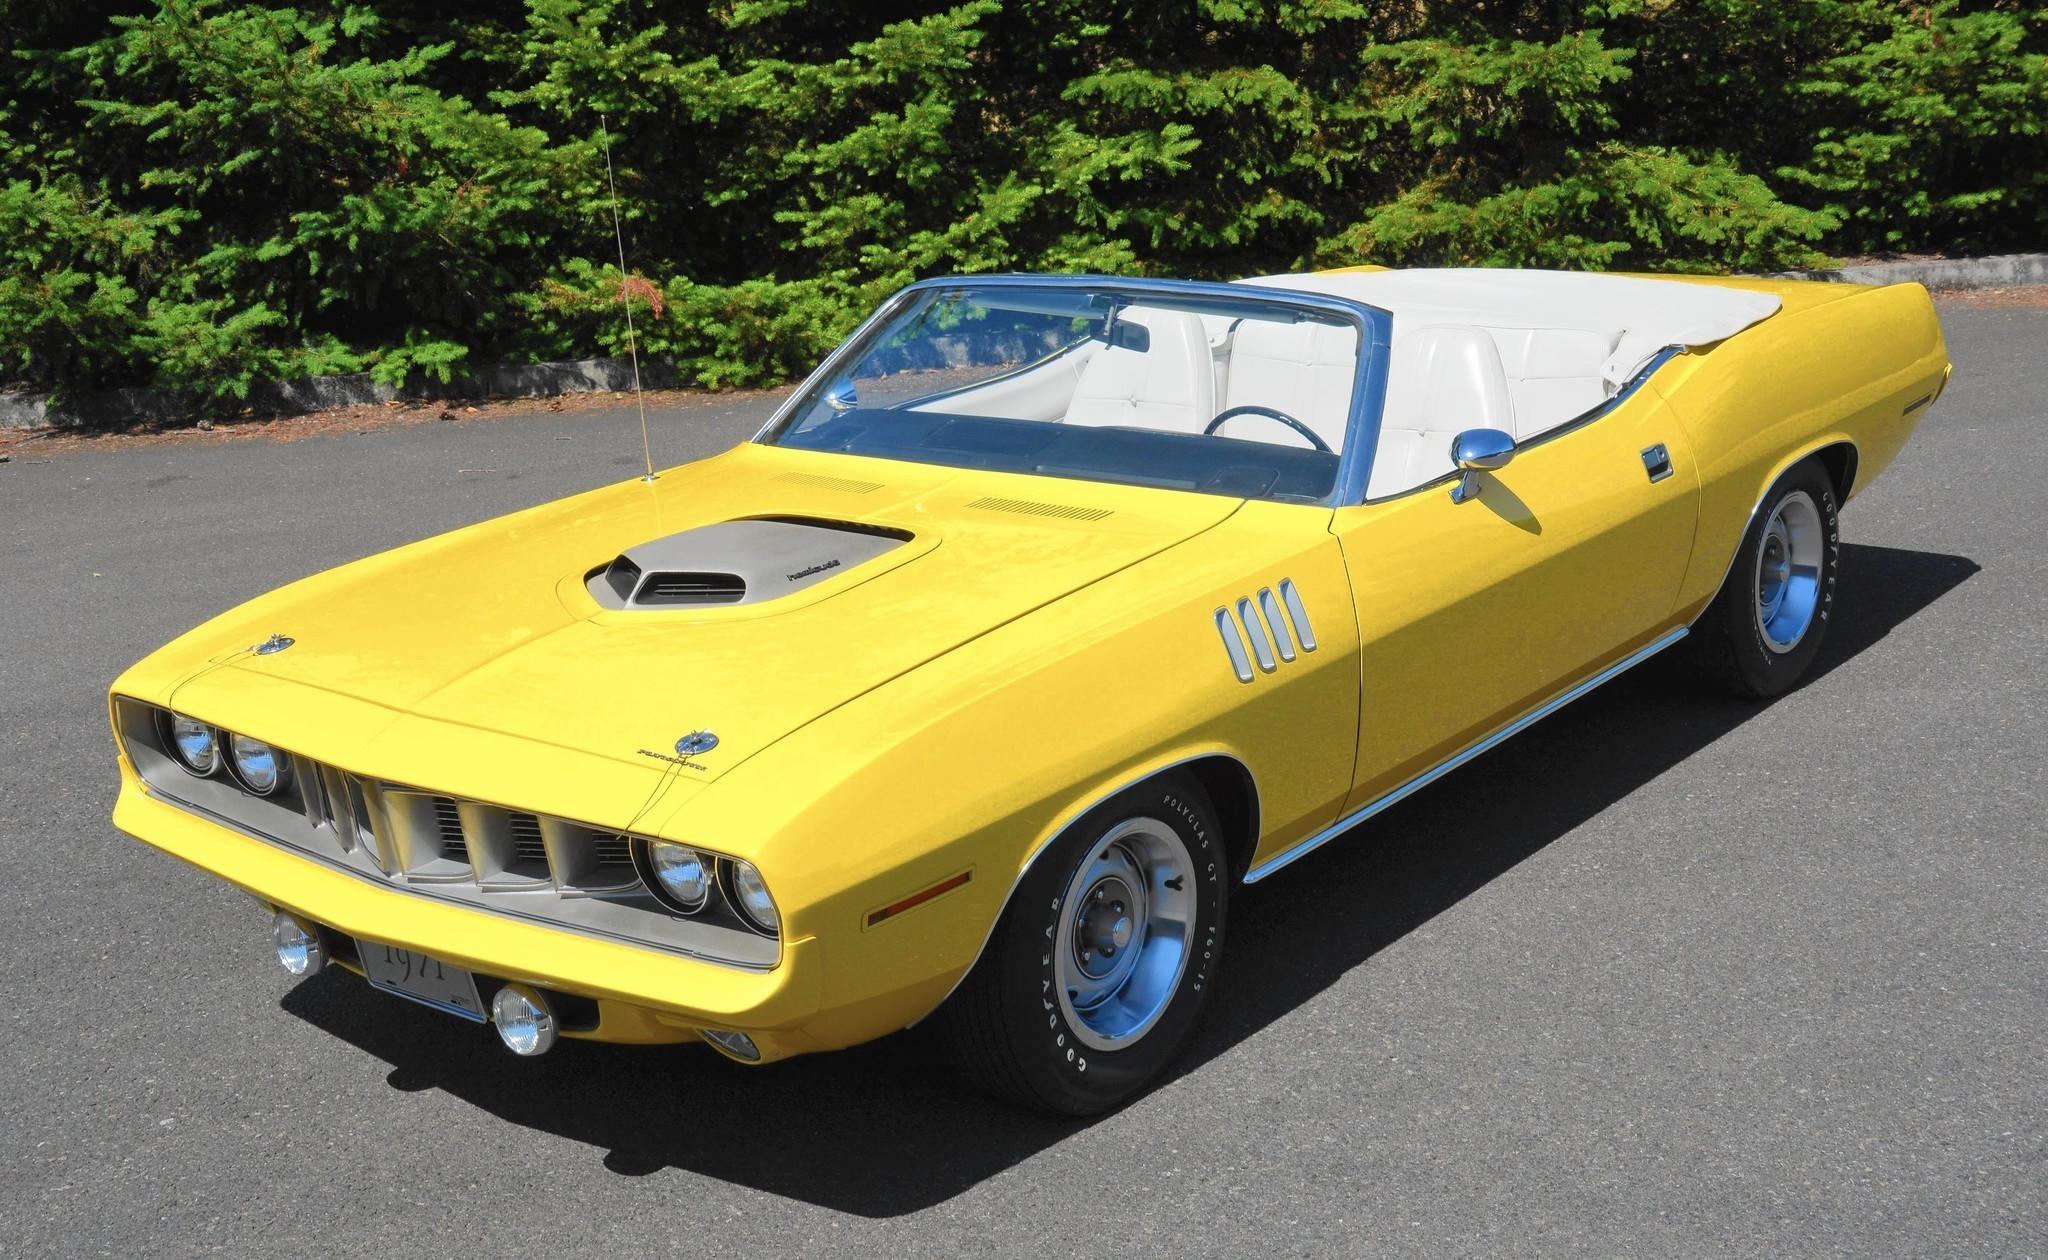 Milliondollar Muscle On Display At Rosemont Car Show Chicago Tribune - Muscle car show